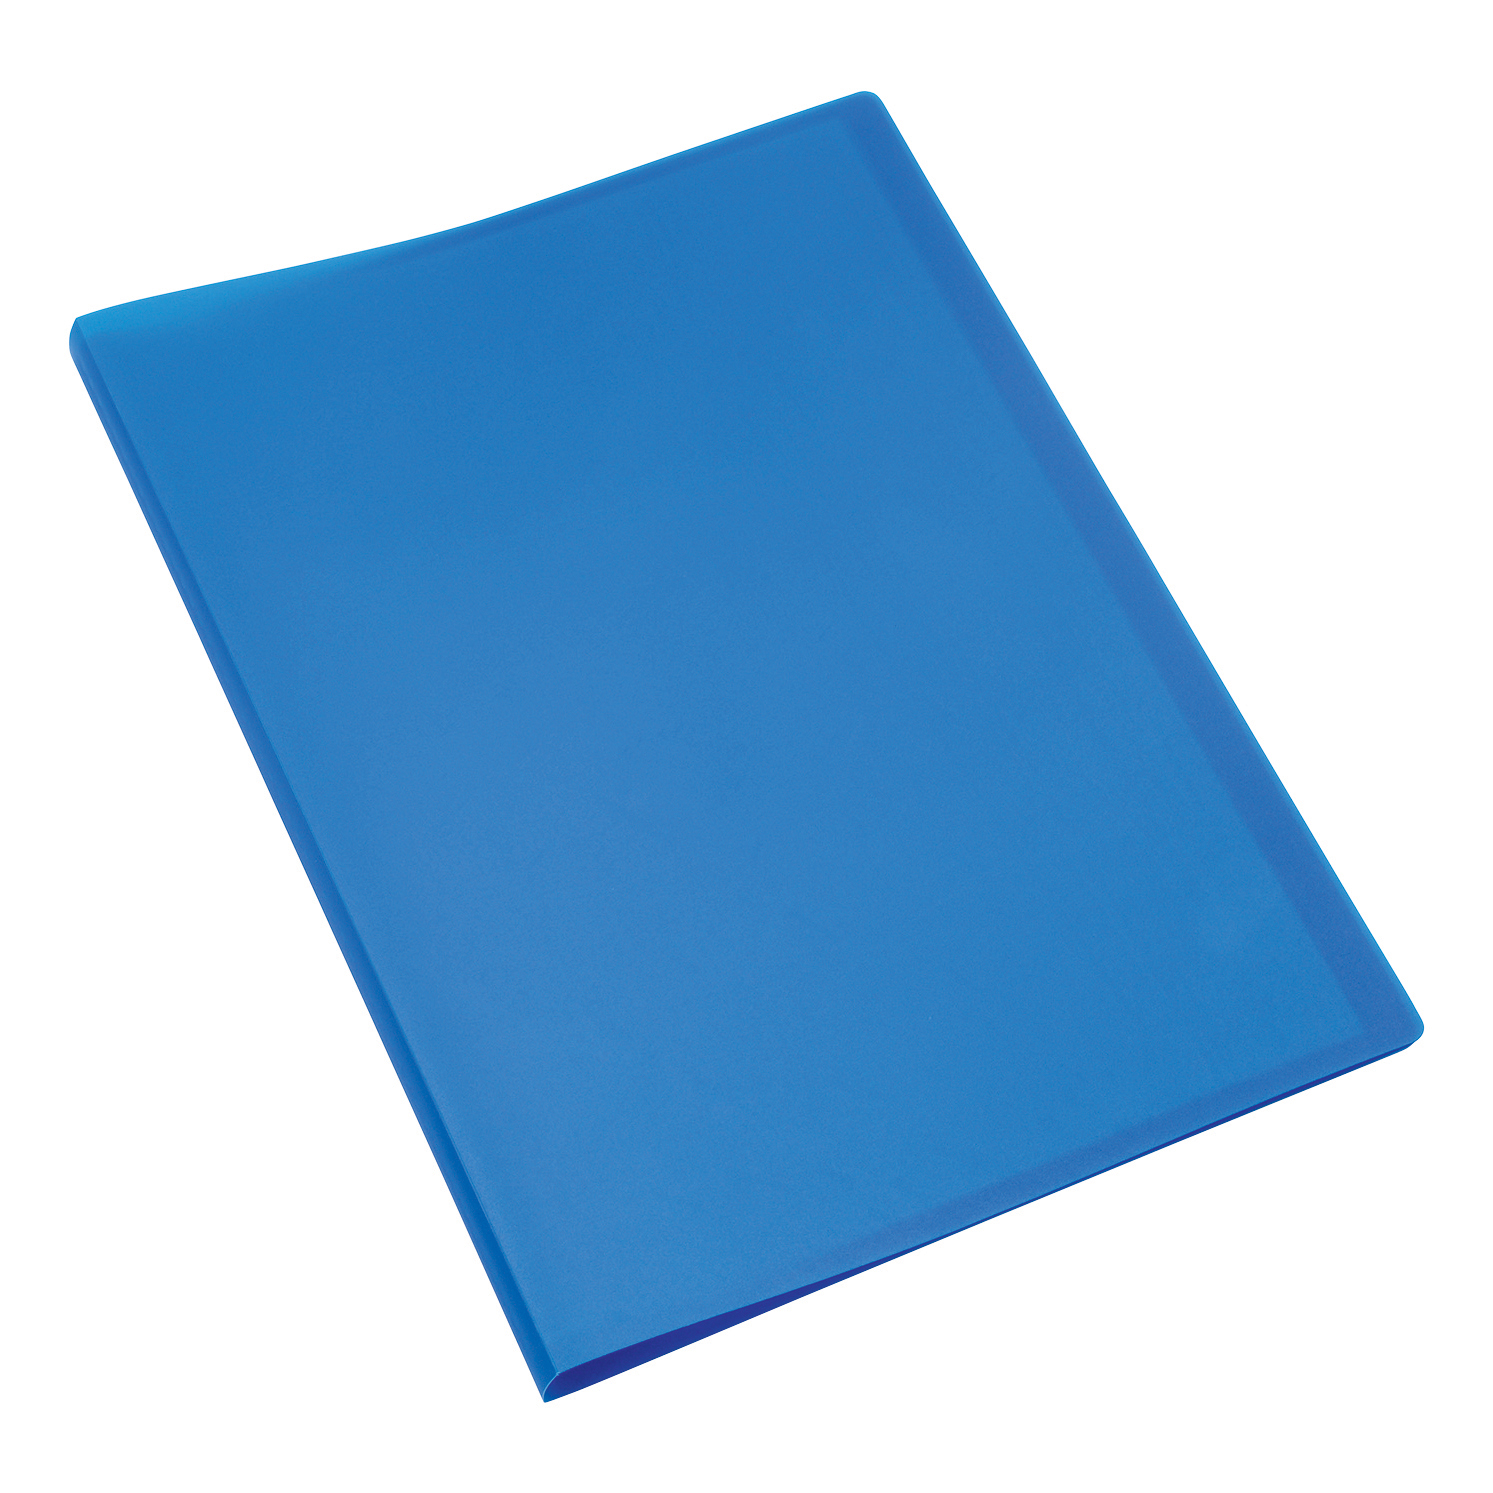 Display Books 5 Star Office Display Book Soft Cover Lightweight Polypropylene 40 Pockets A4 Blue